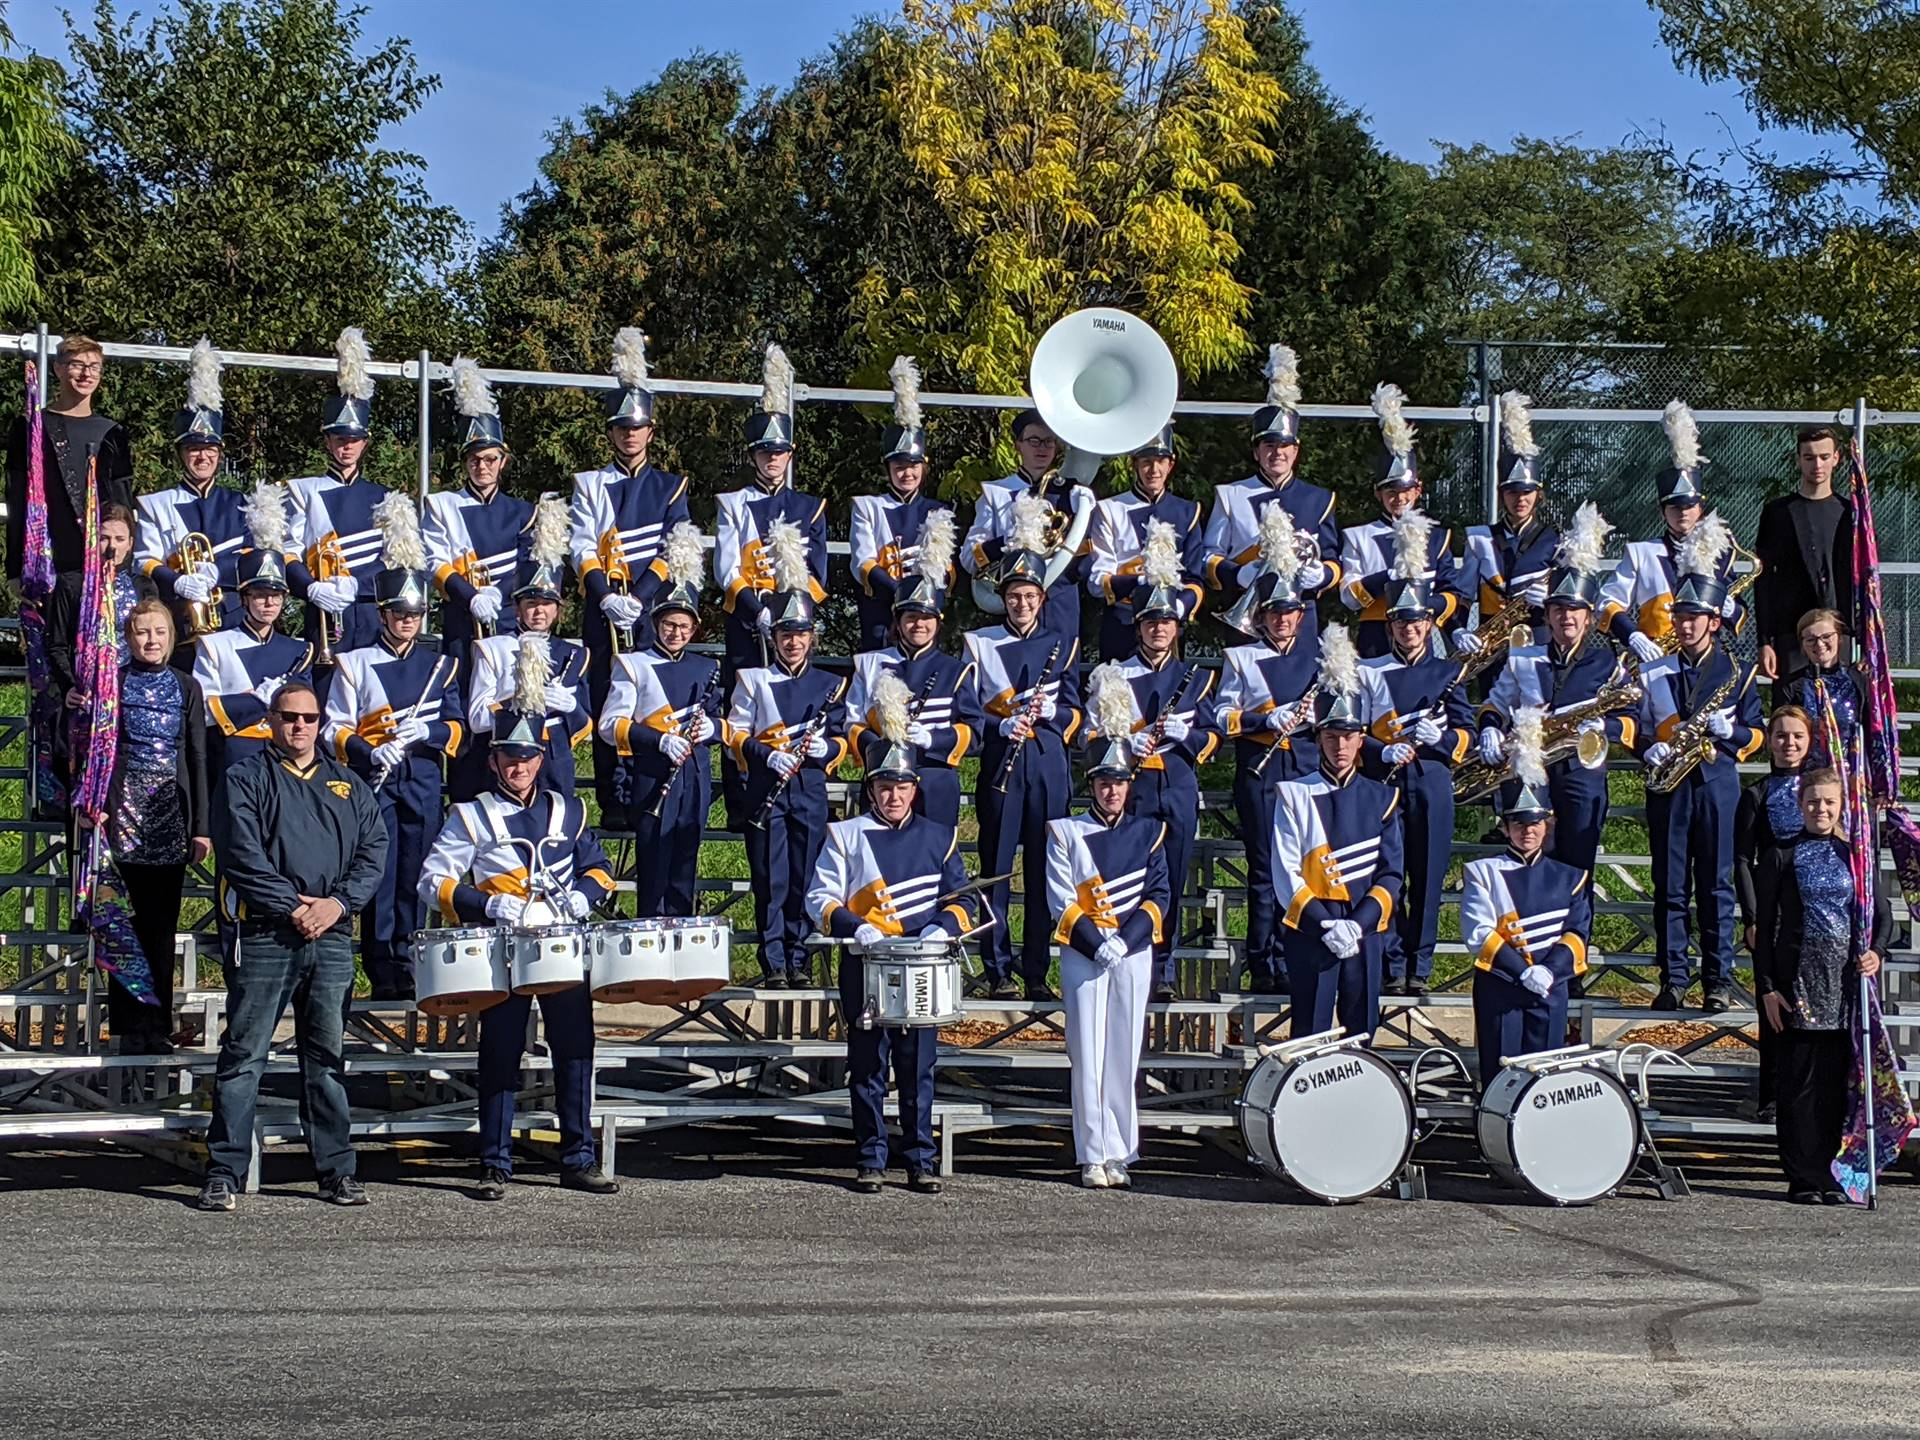 CHS marching band members